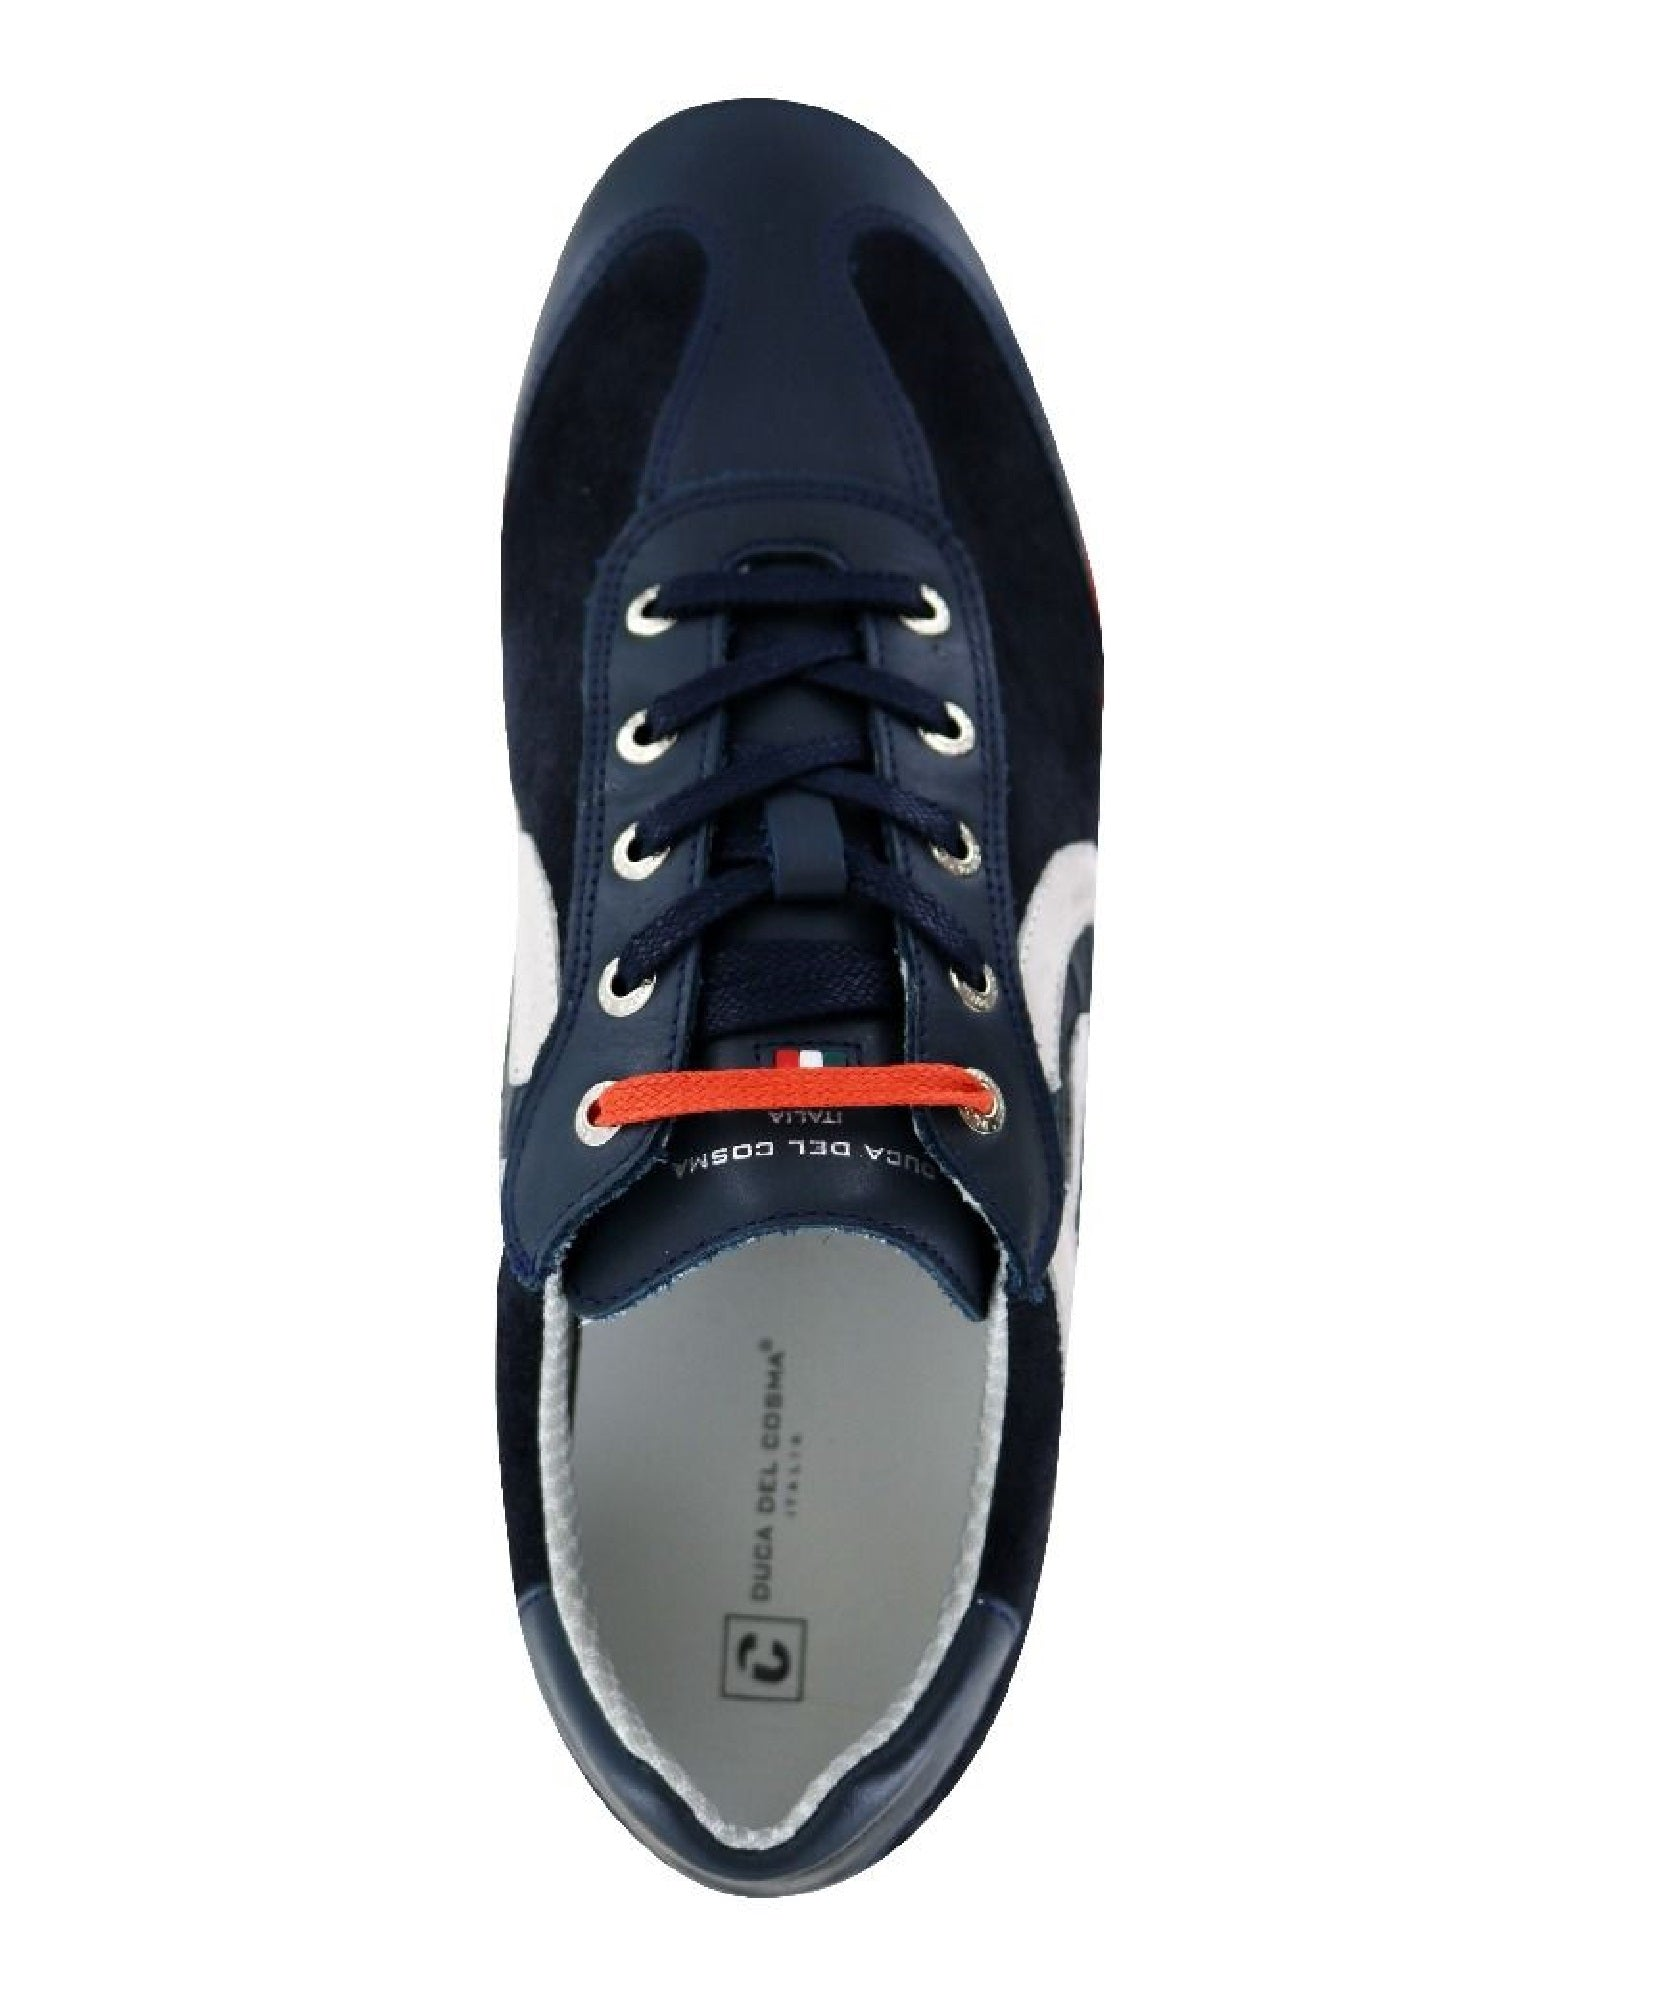 Duca Del Cosma Kuba A3 Original Golf Shoes